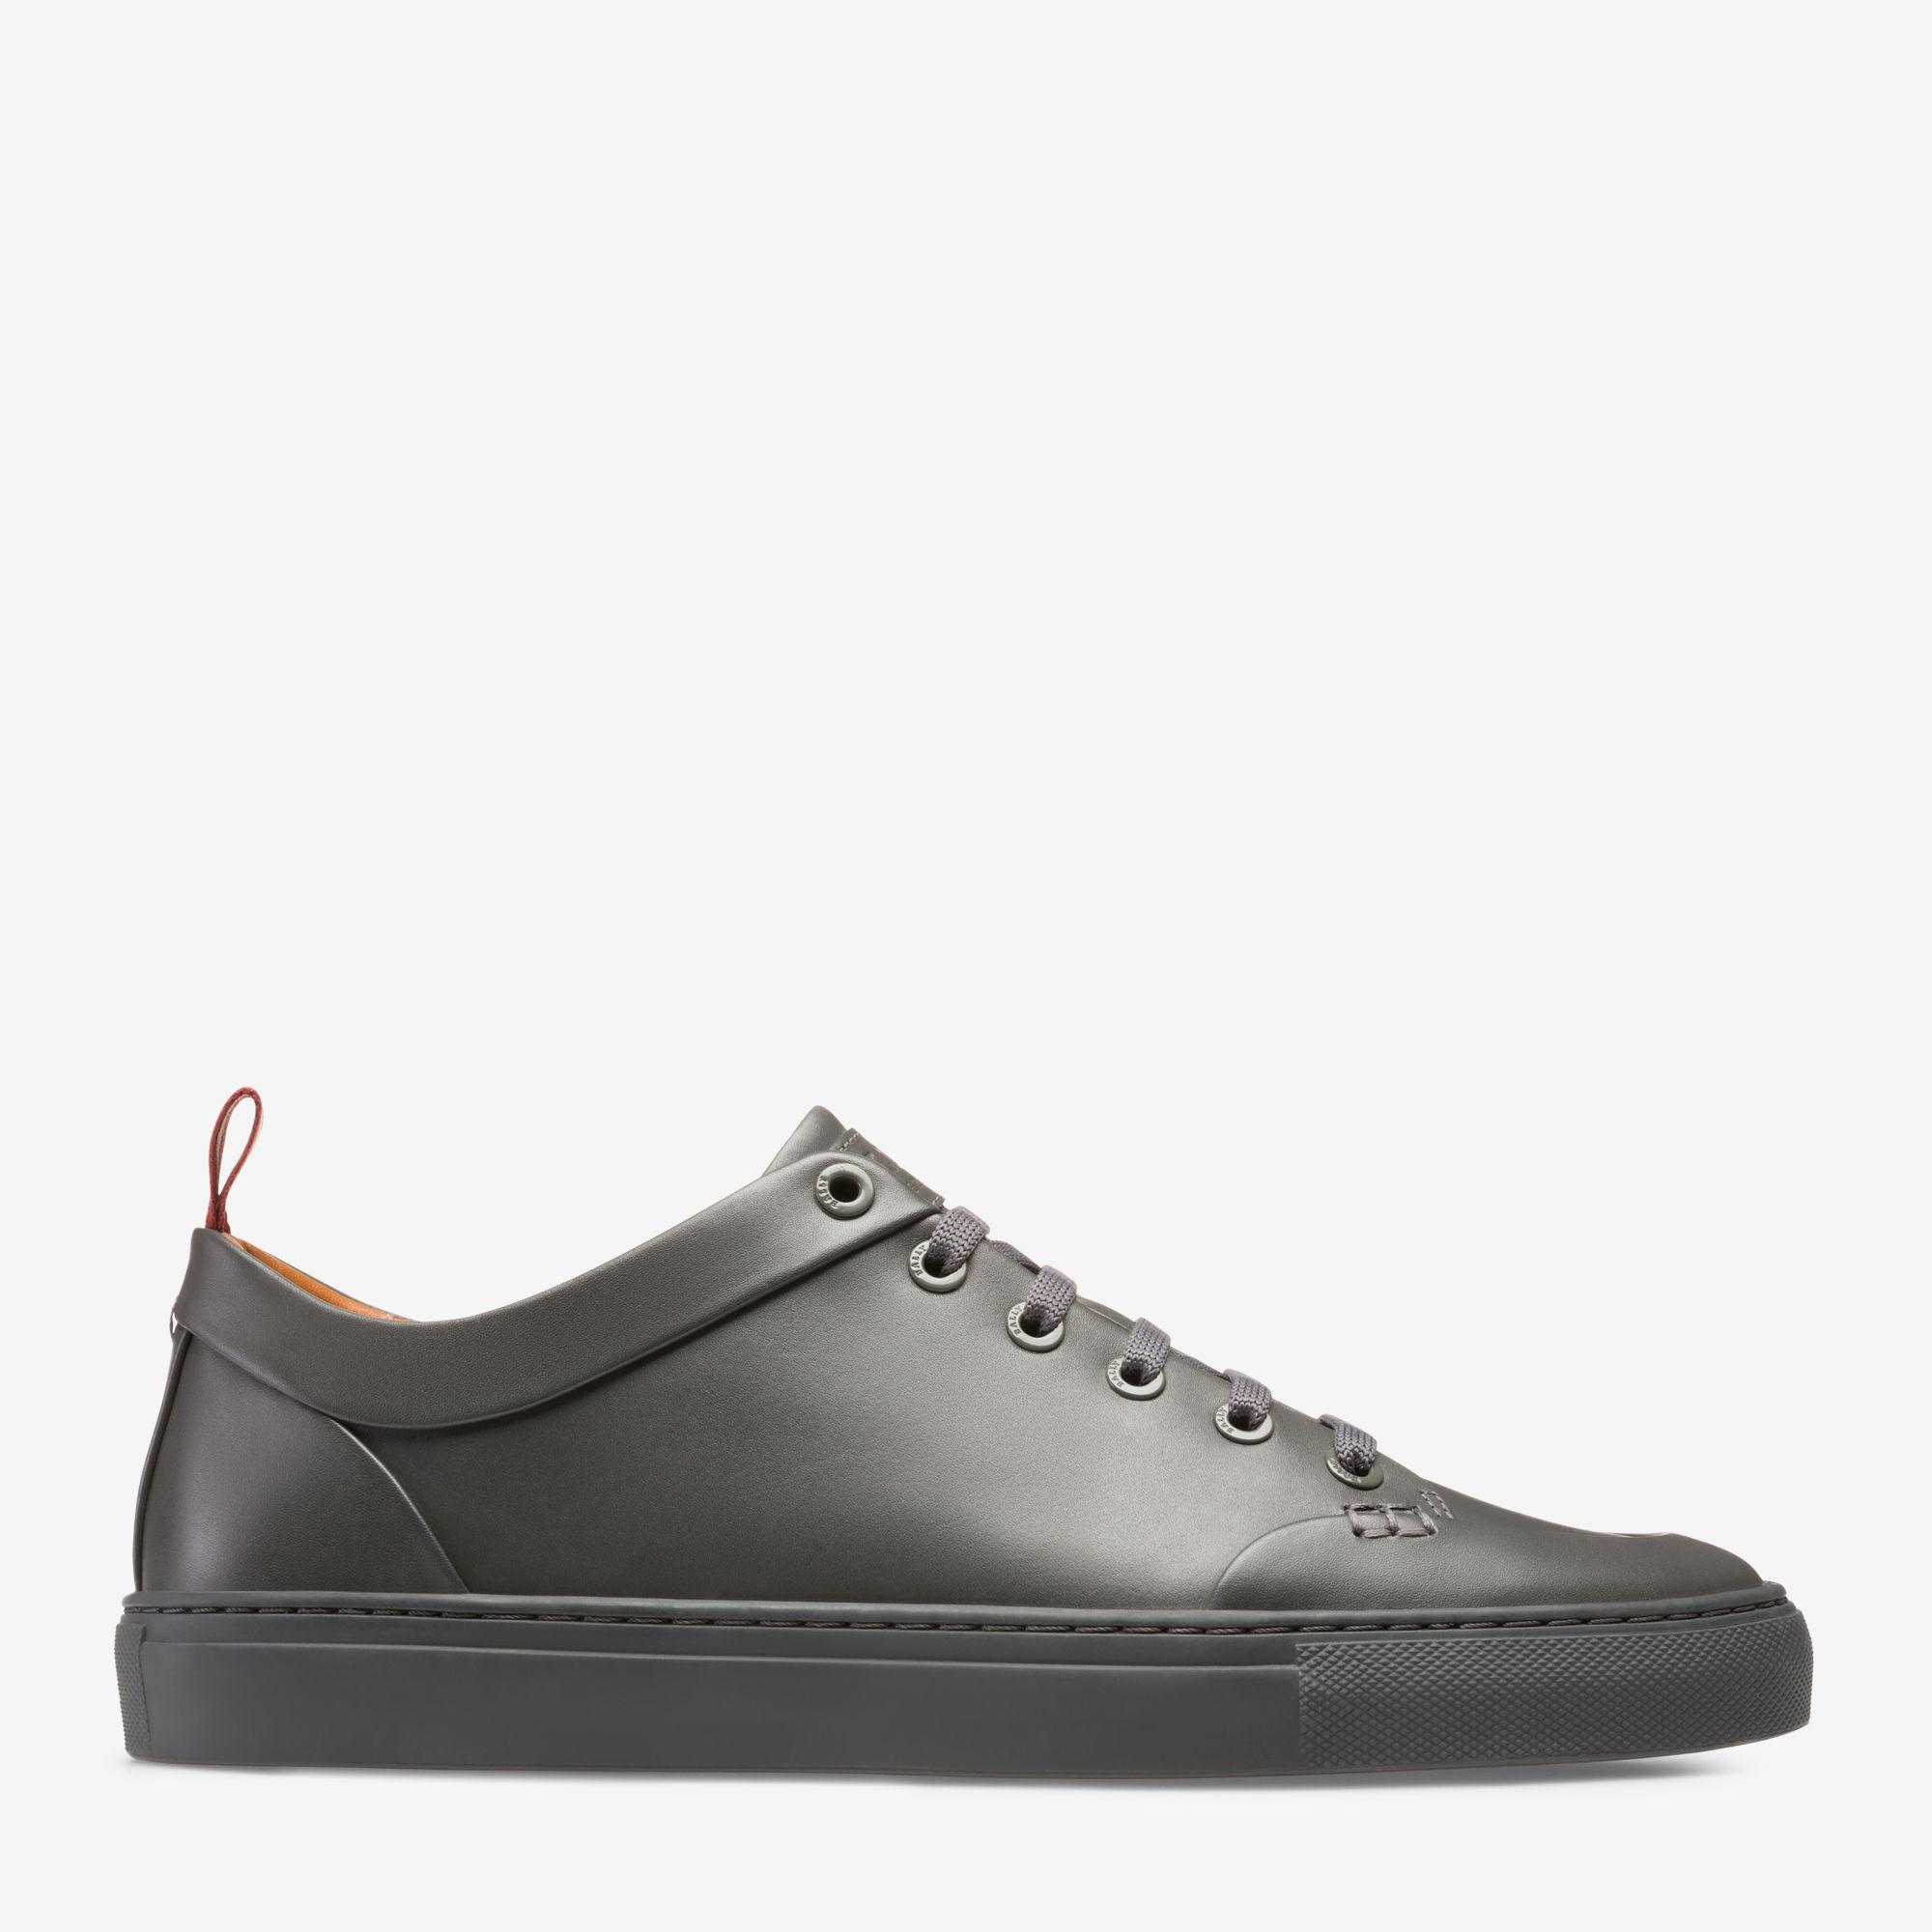 Bally Leather Helliot in Grey (Gray